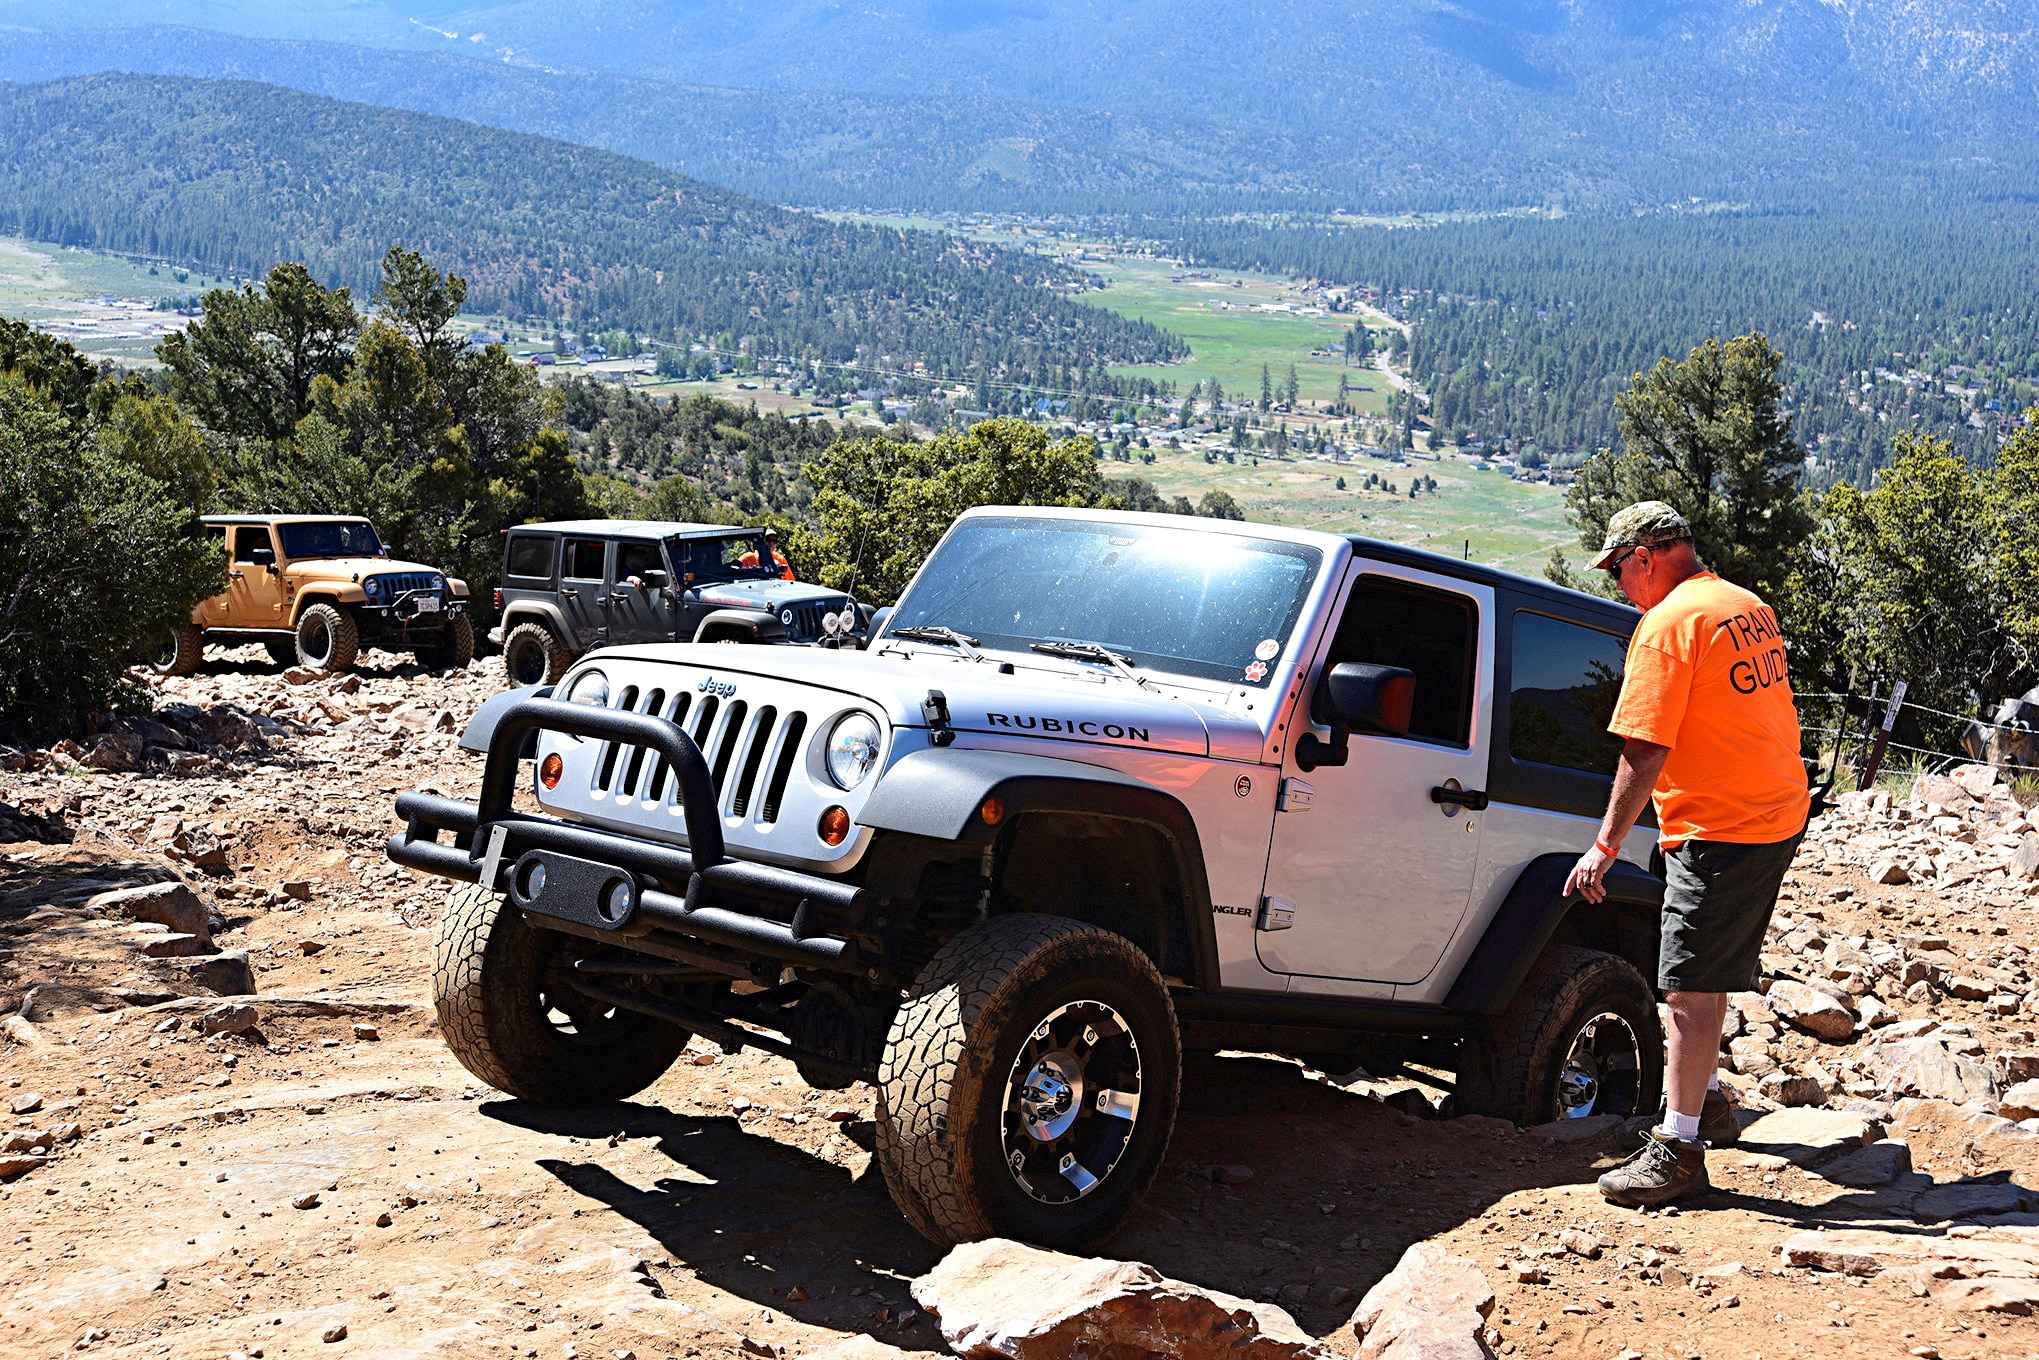 028 jeep event big bear forest fest 2019 inland empire